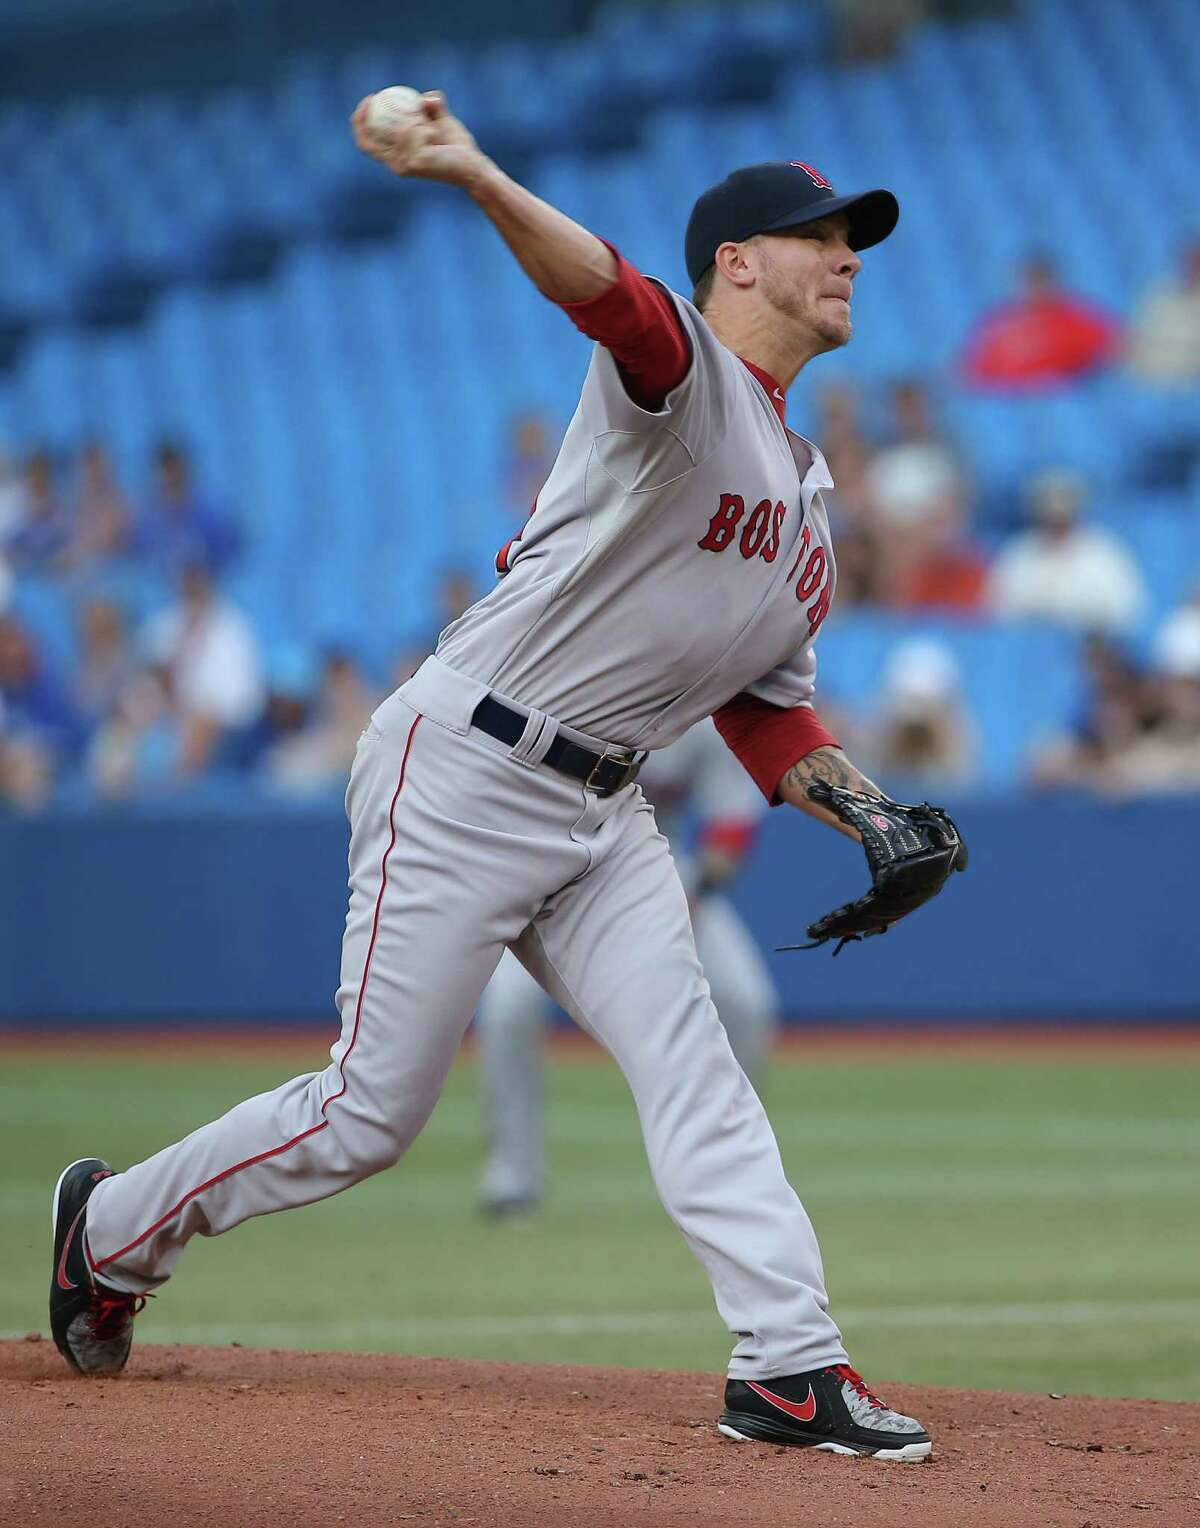 TORONTO, CANADA - JULY 22: Jake Peavy #44 of the Boston Red Sox delivers a pitch in the first inning during MLB game action against the Toronto Blue Jays on July 22, 2014 at Rogers Centre in Toronto, Ontario, Canada. (Photo by Tom Szczerbowski/Getty Images) ORG XMIT: 477586637